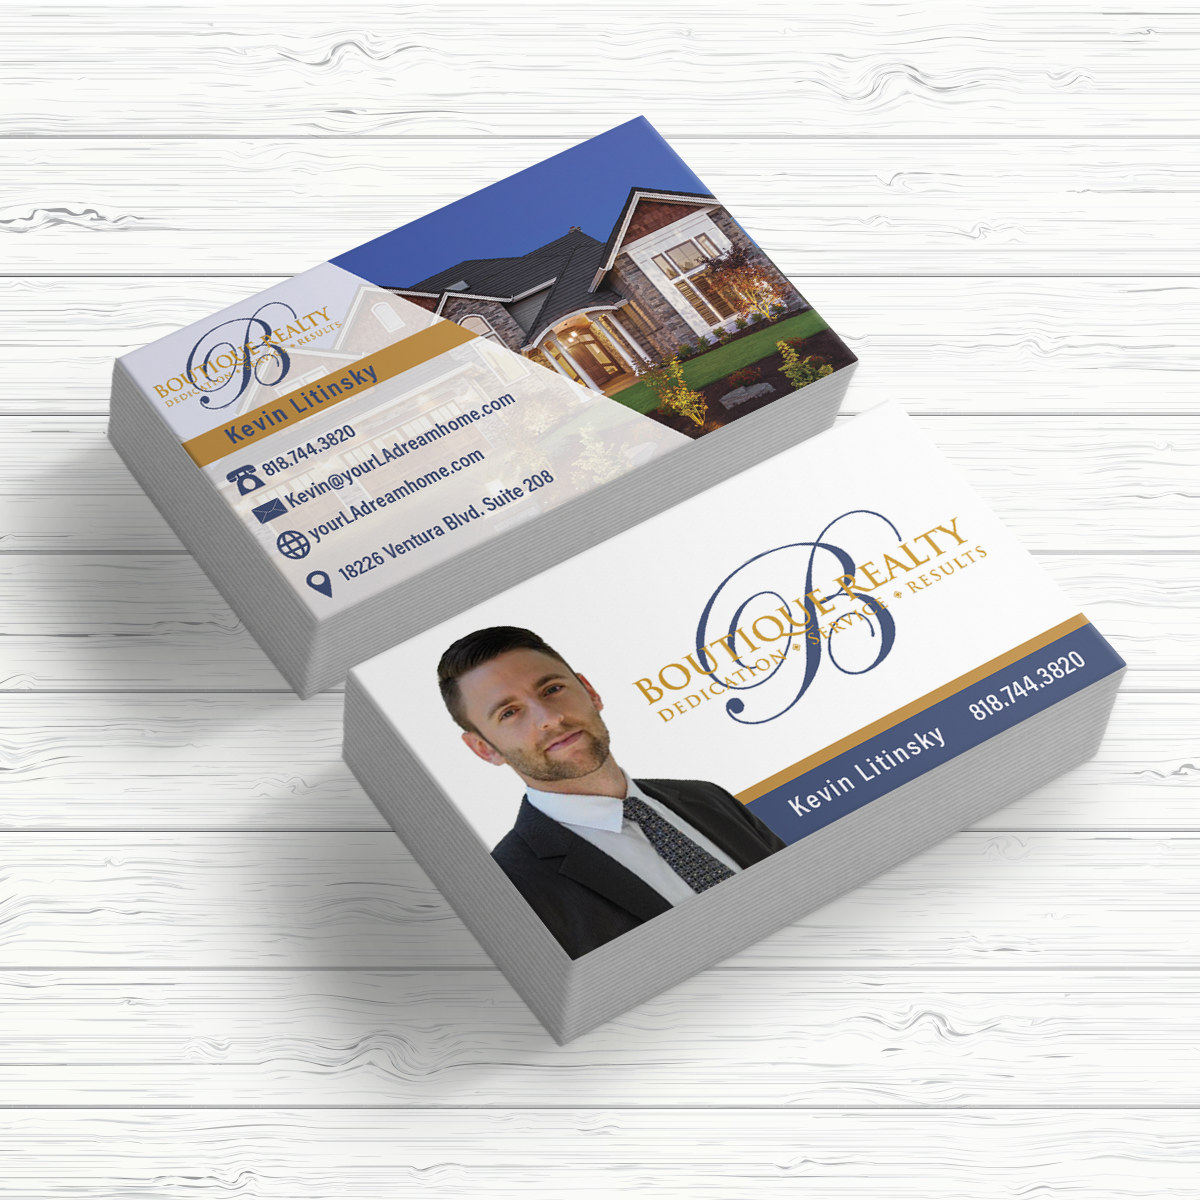 250 Business Cards ($49)